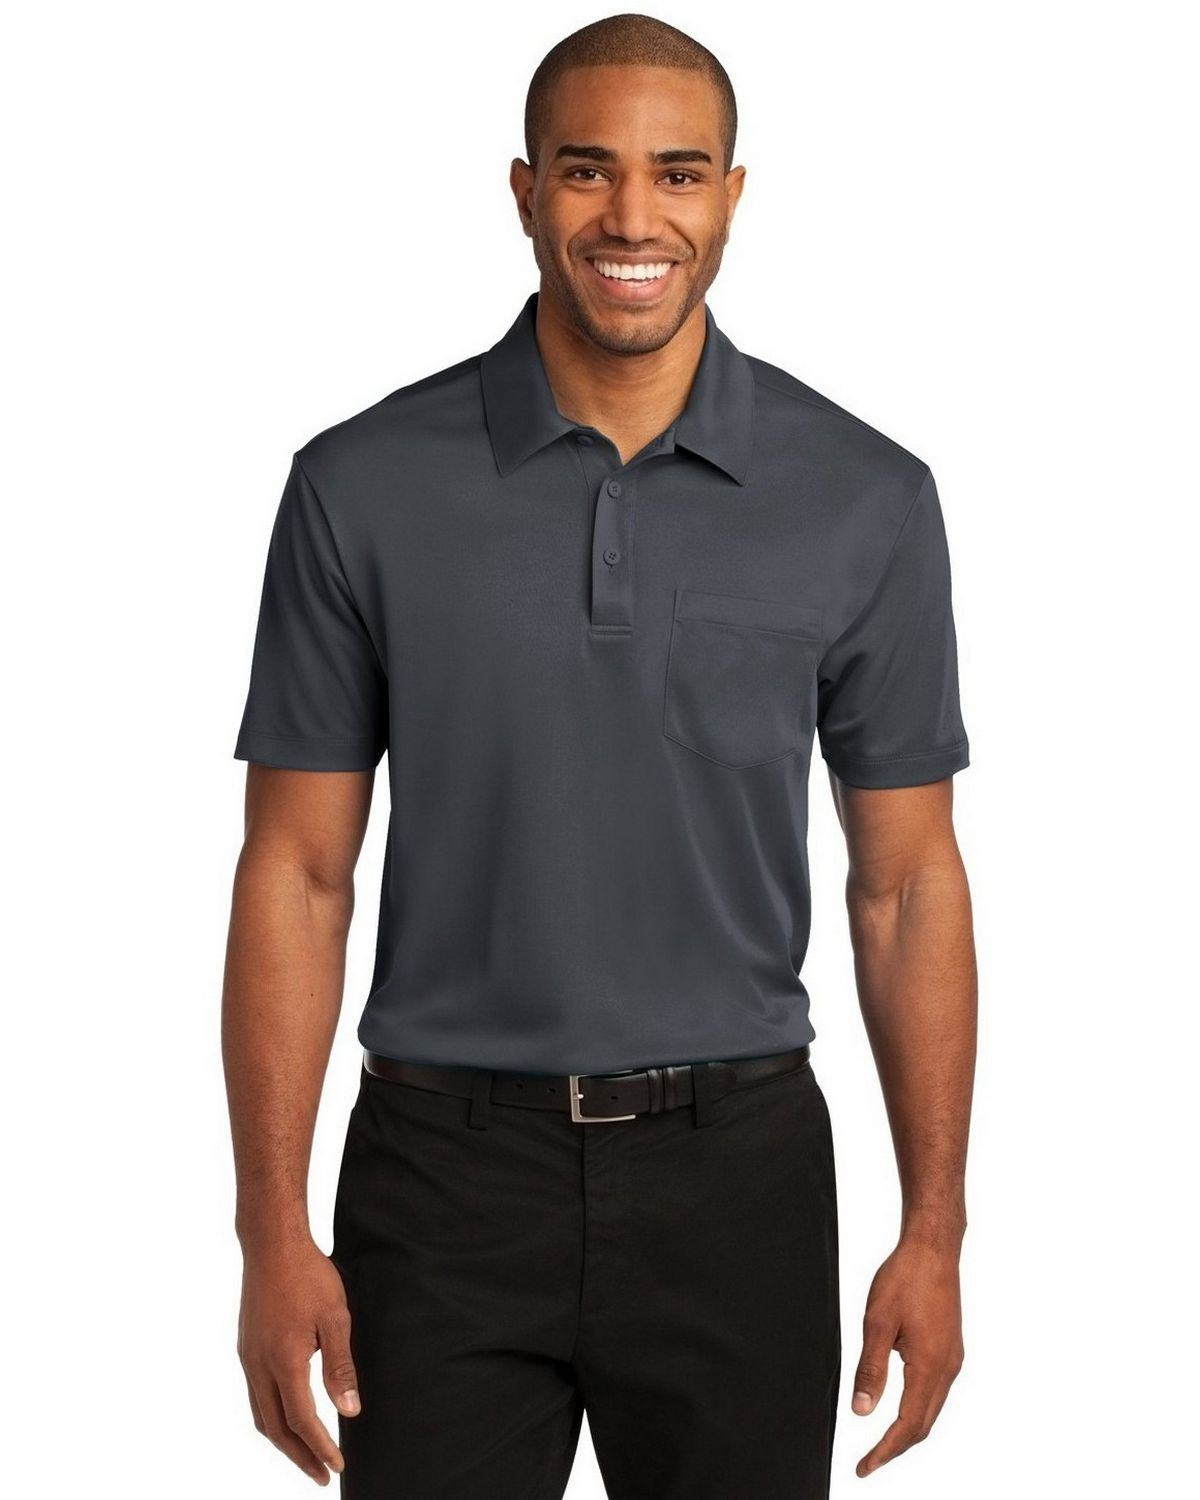 Port Authority K540P Men's Silk Touch Performance Pocket Polo - Steel Grey - XS #silk